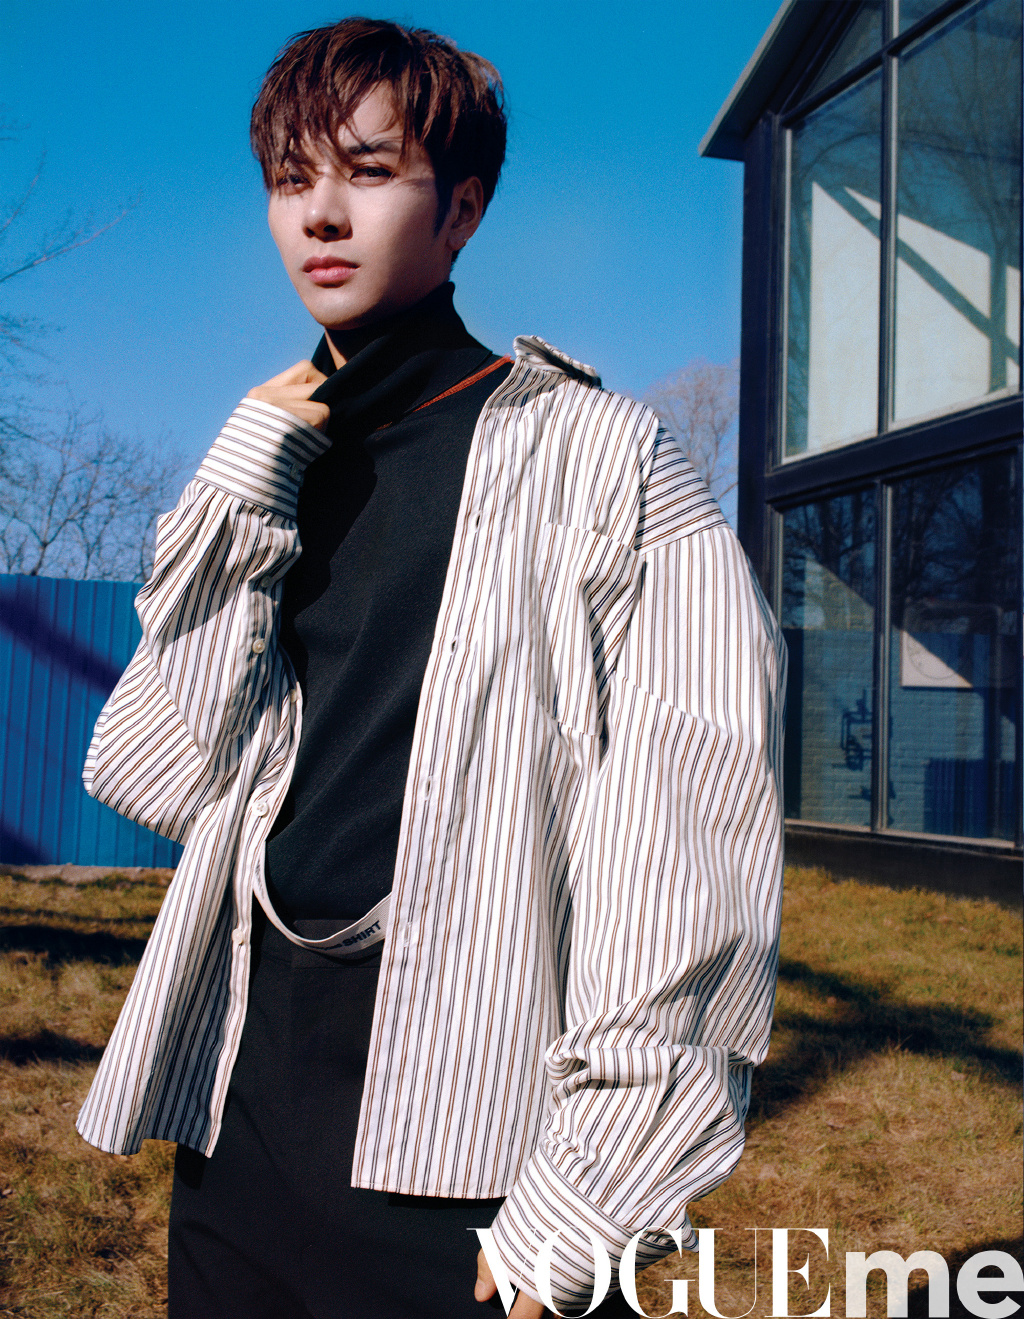 Jackson for Vogue Me China June 2017 Issue